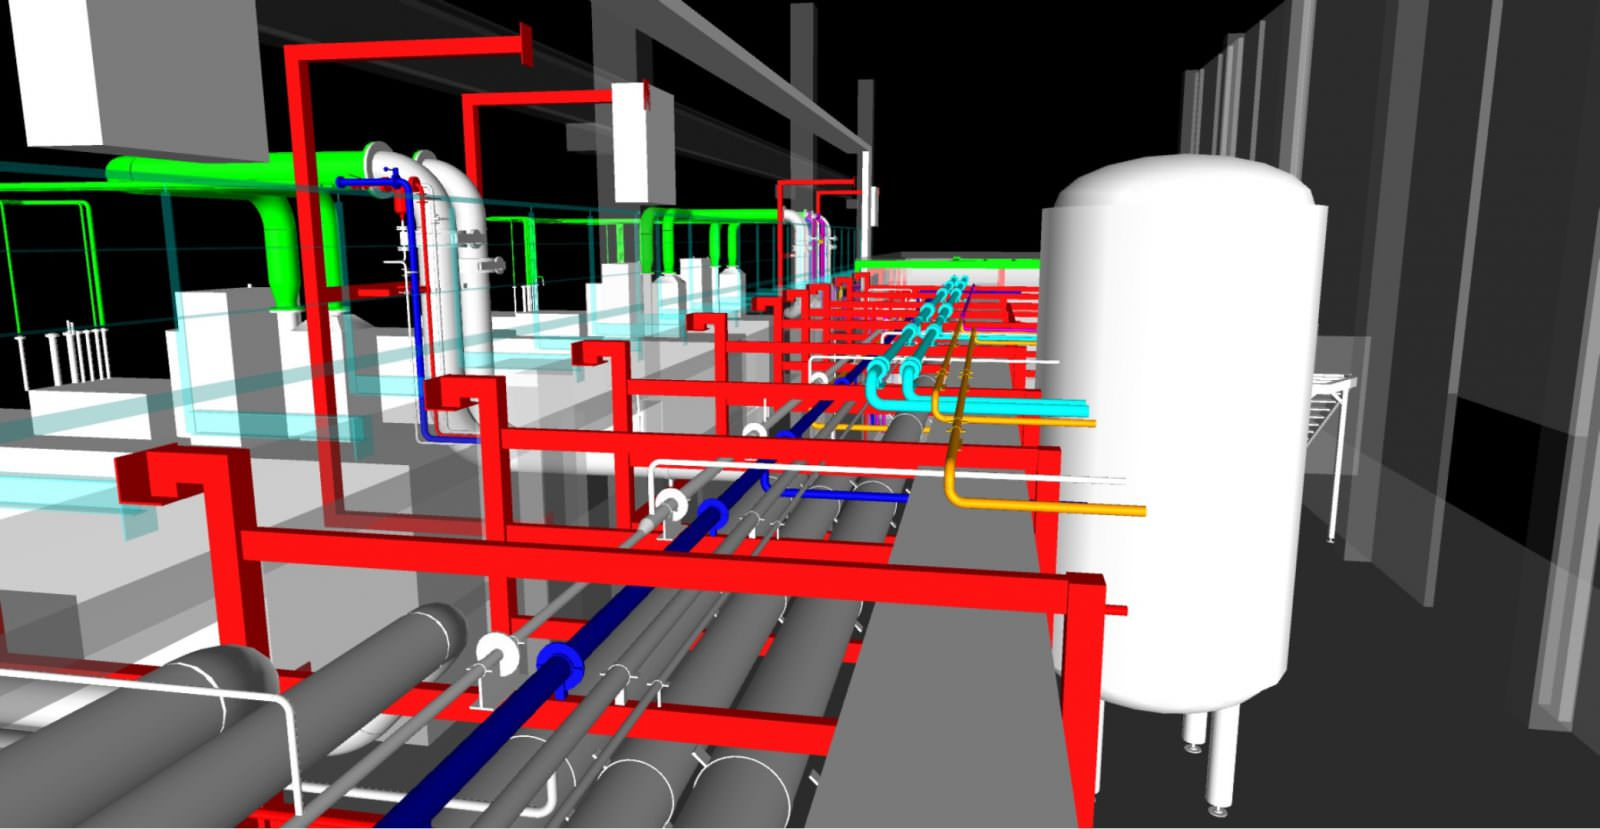 3D construction piping and tank